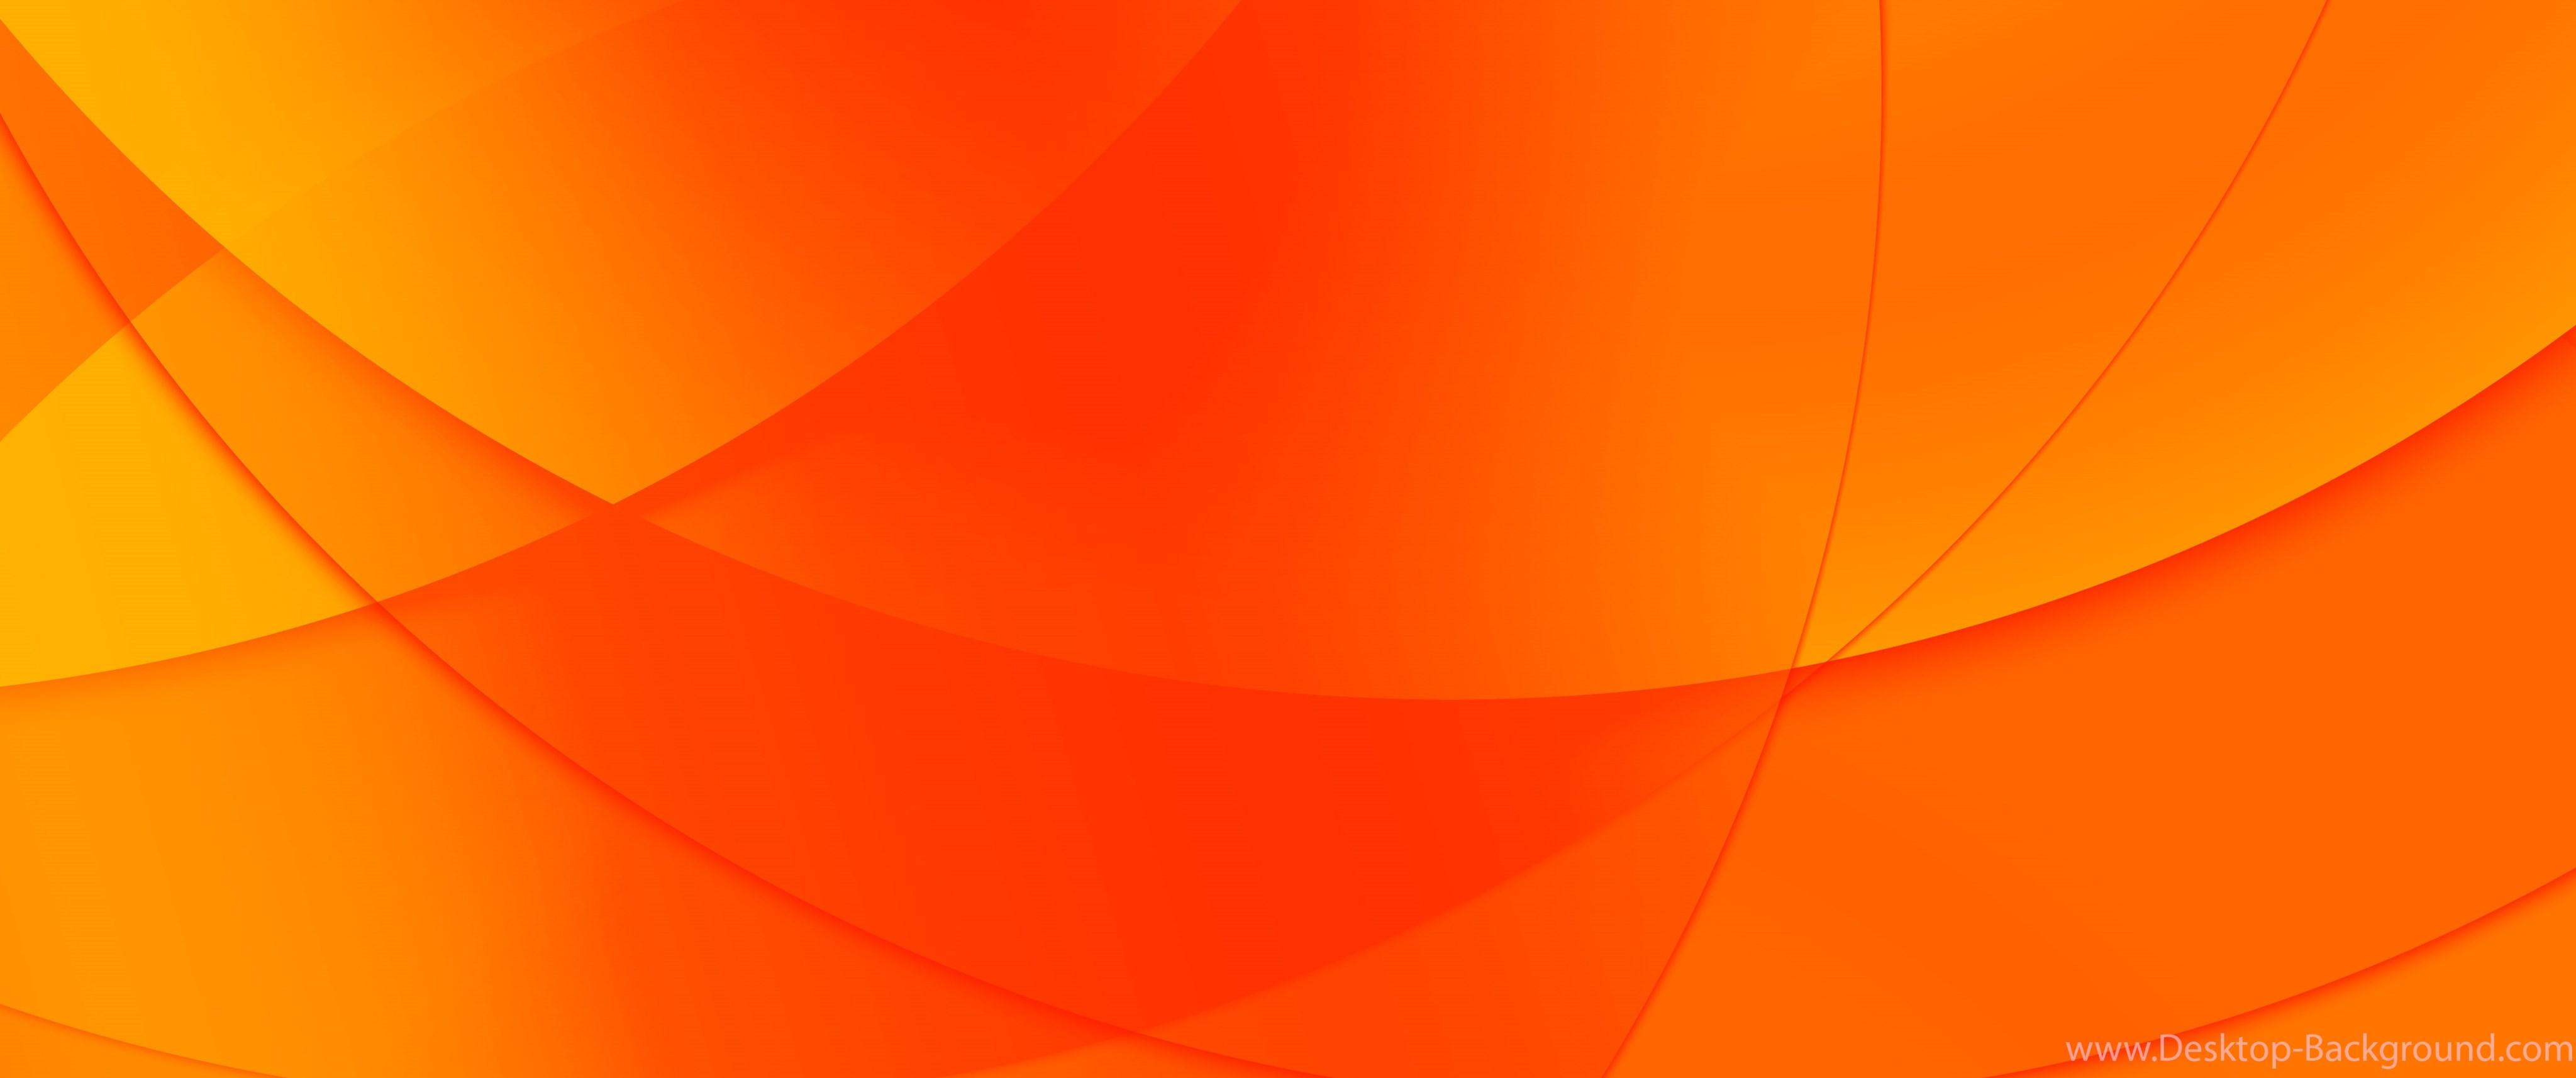 Orange Backgrounds Image Wallpapers Zone Desktop Backgrounds